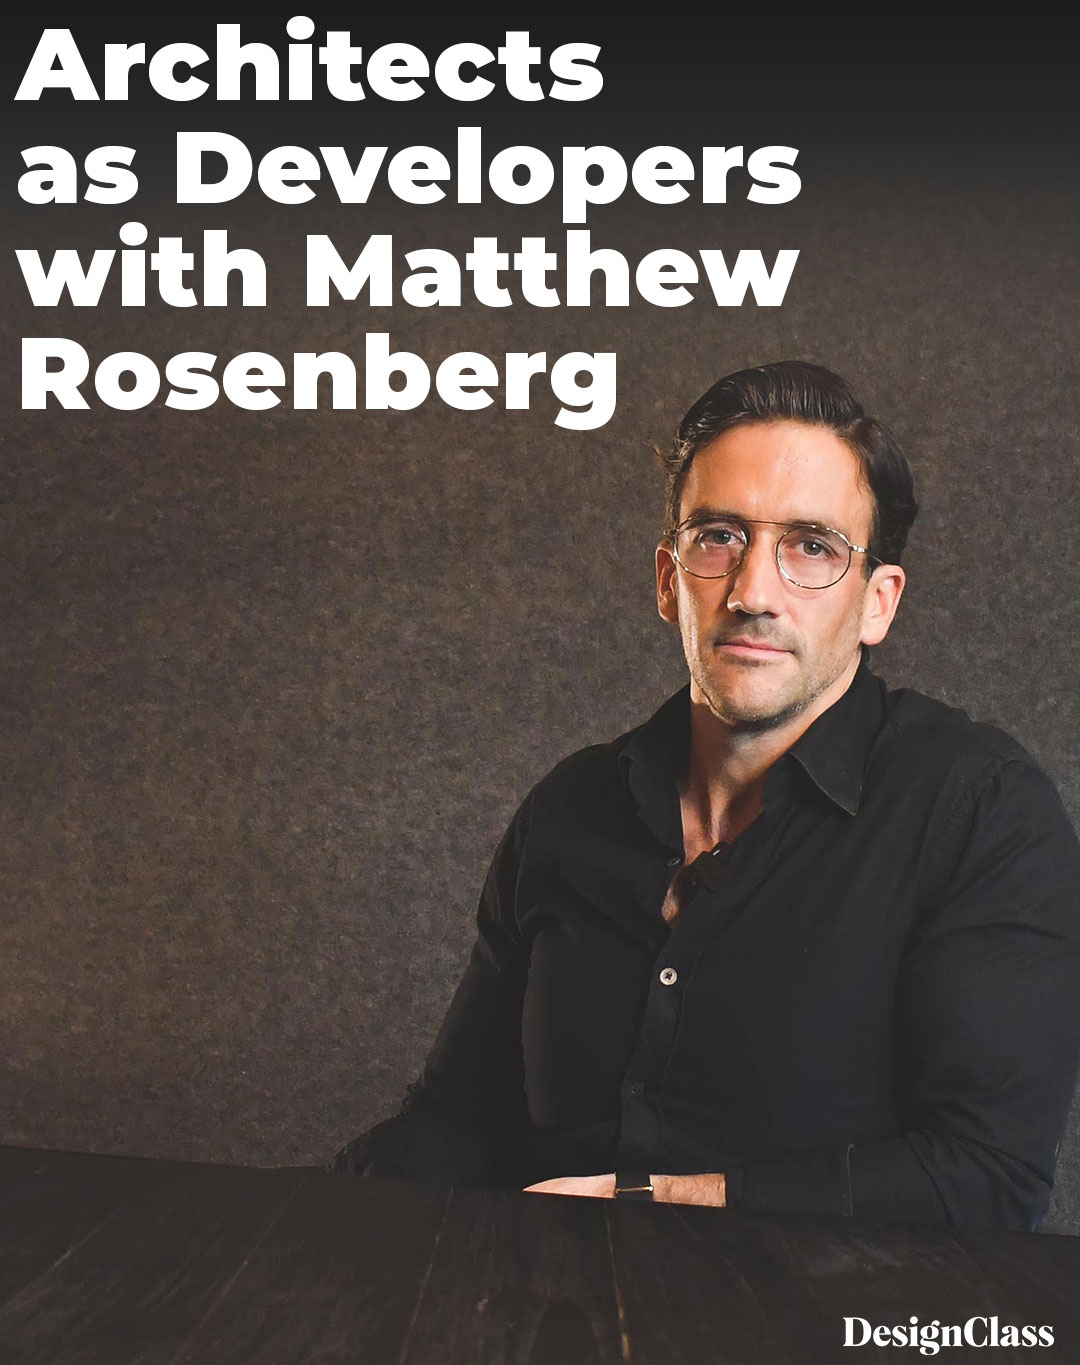 Architects as Developers with Matthew Rosenberg